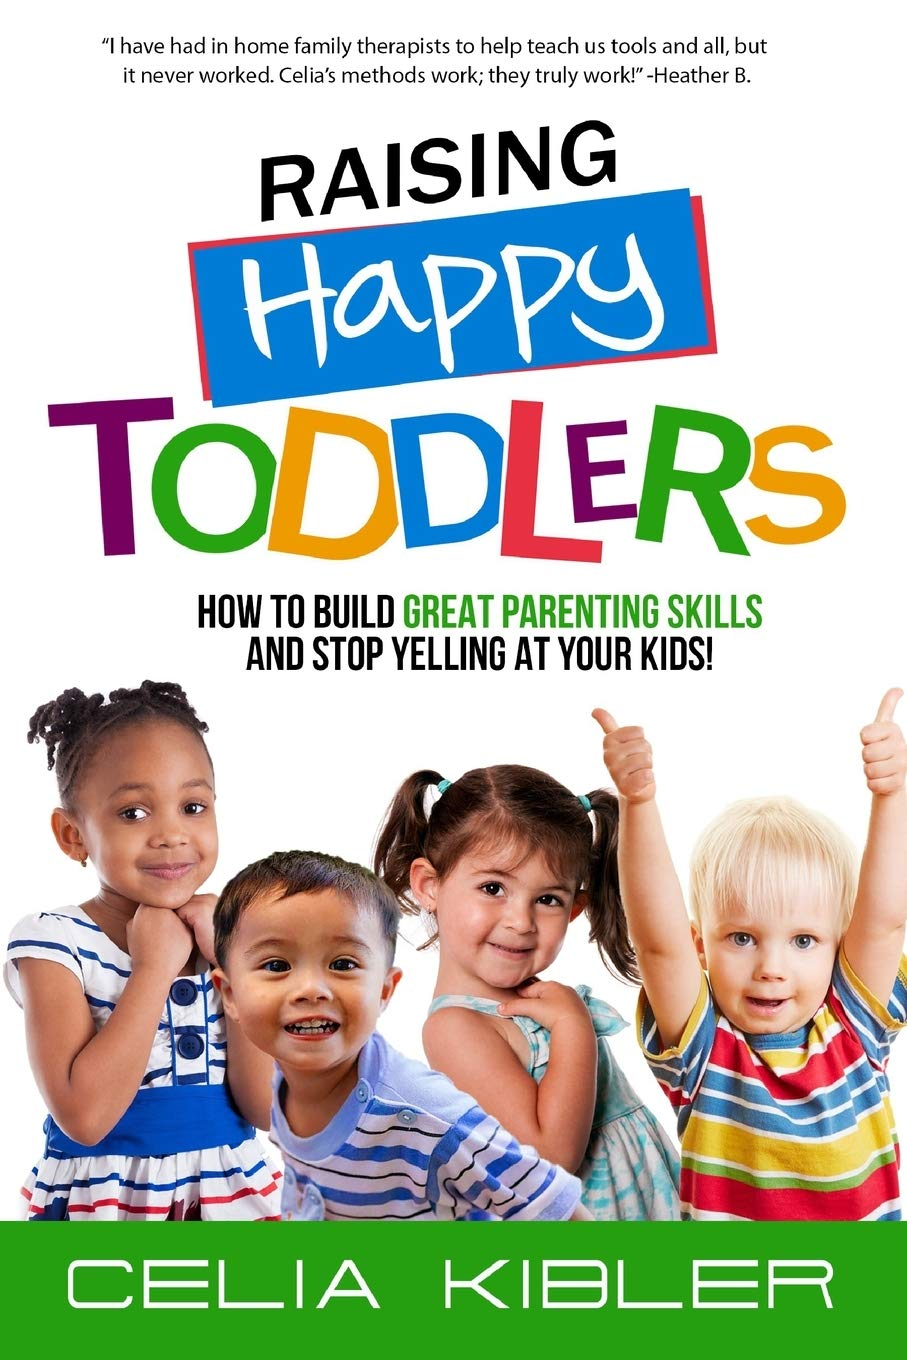 Raising Happy Toddlers: How To Build Great Parenting Skills and Stop Yelling at Your Kids!